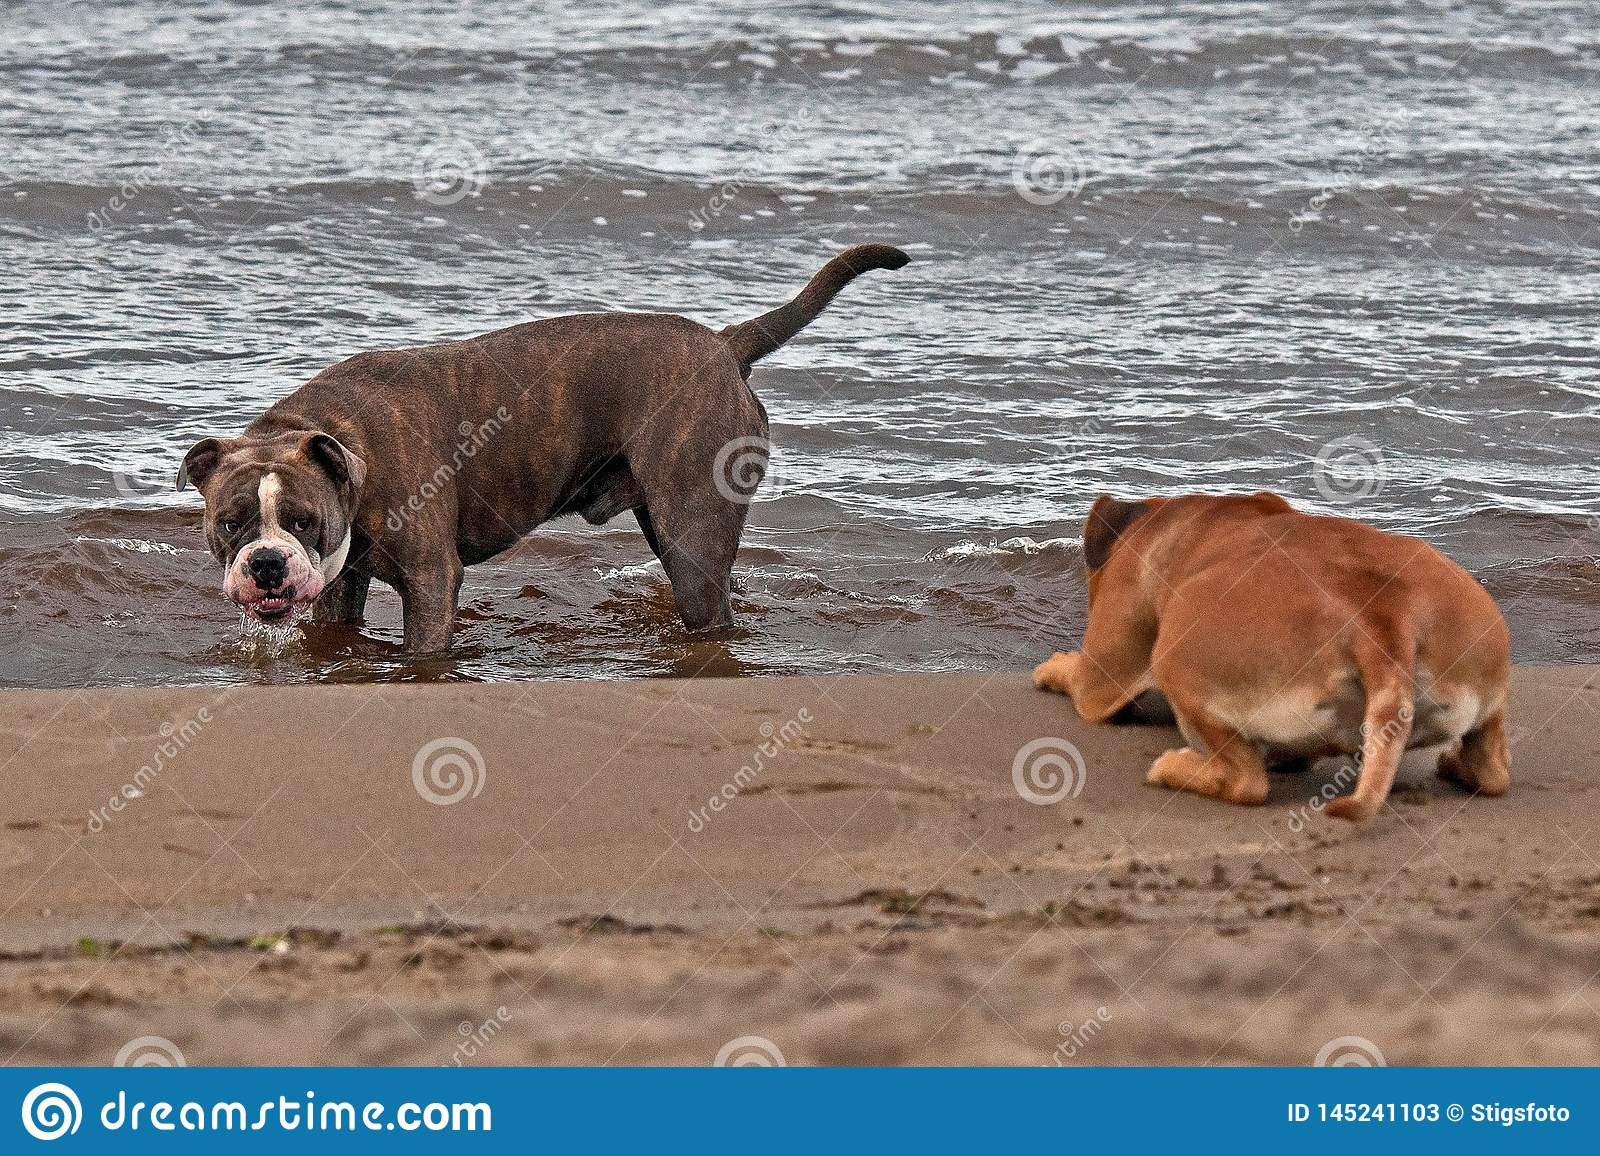 Bulldog and American staffordshire terrier play on beach